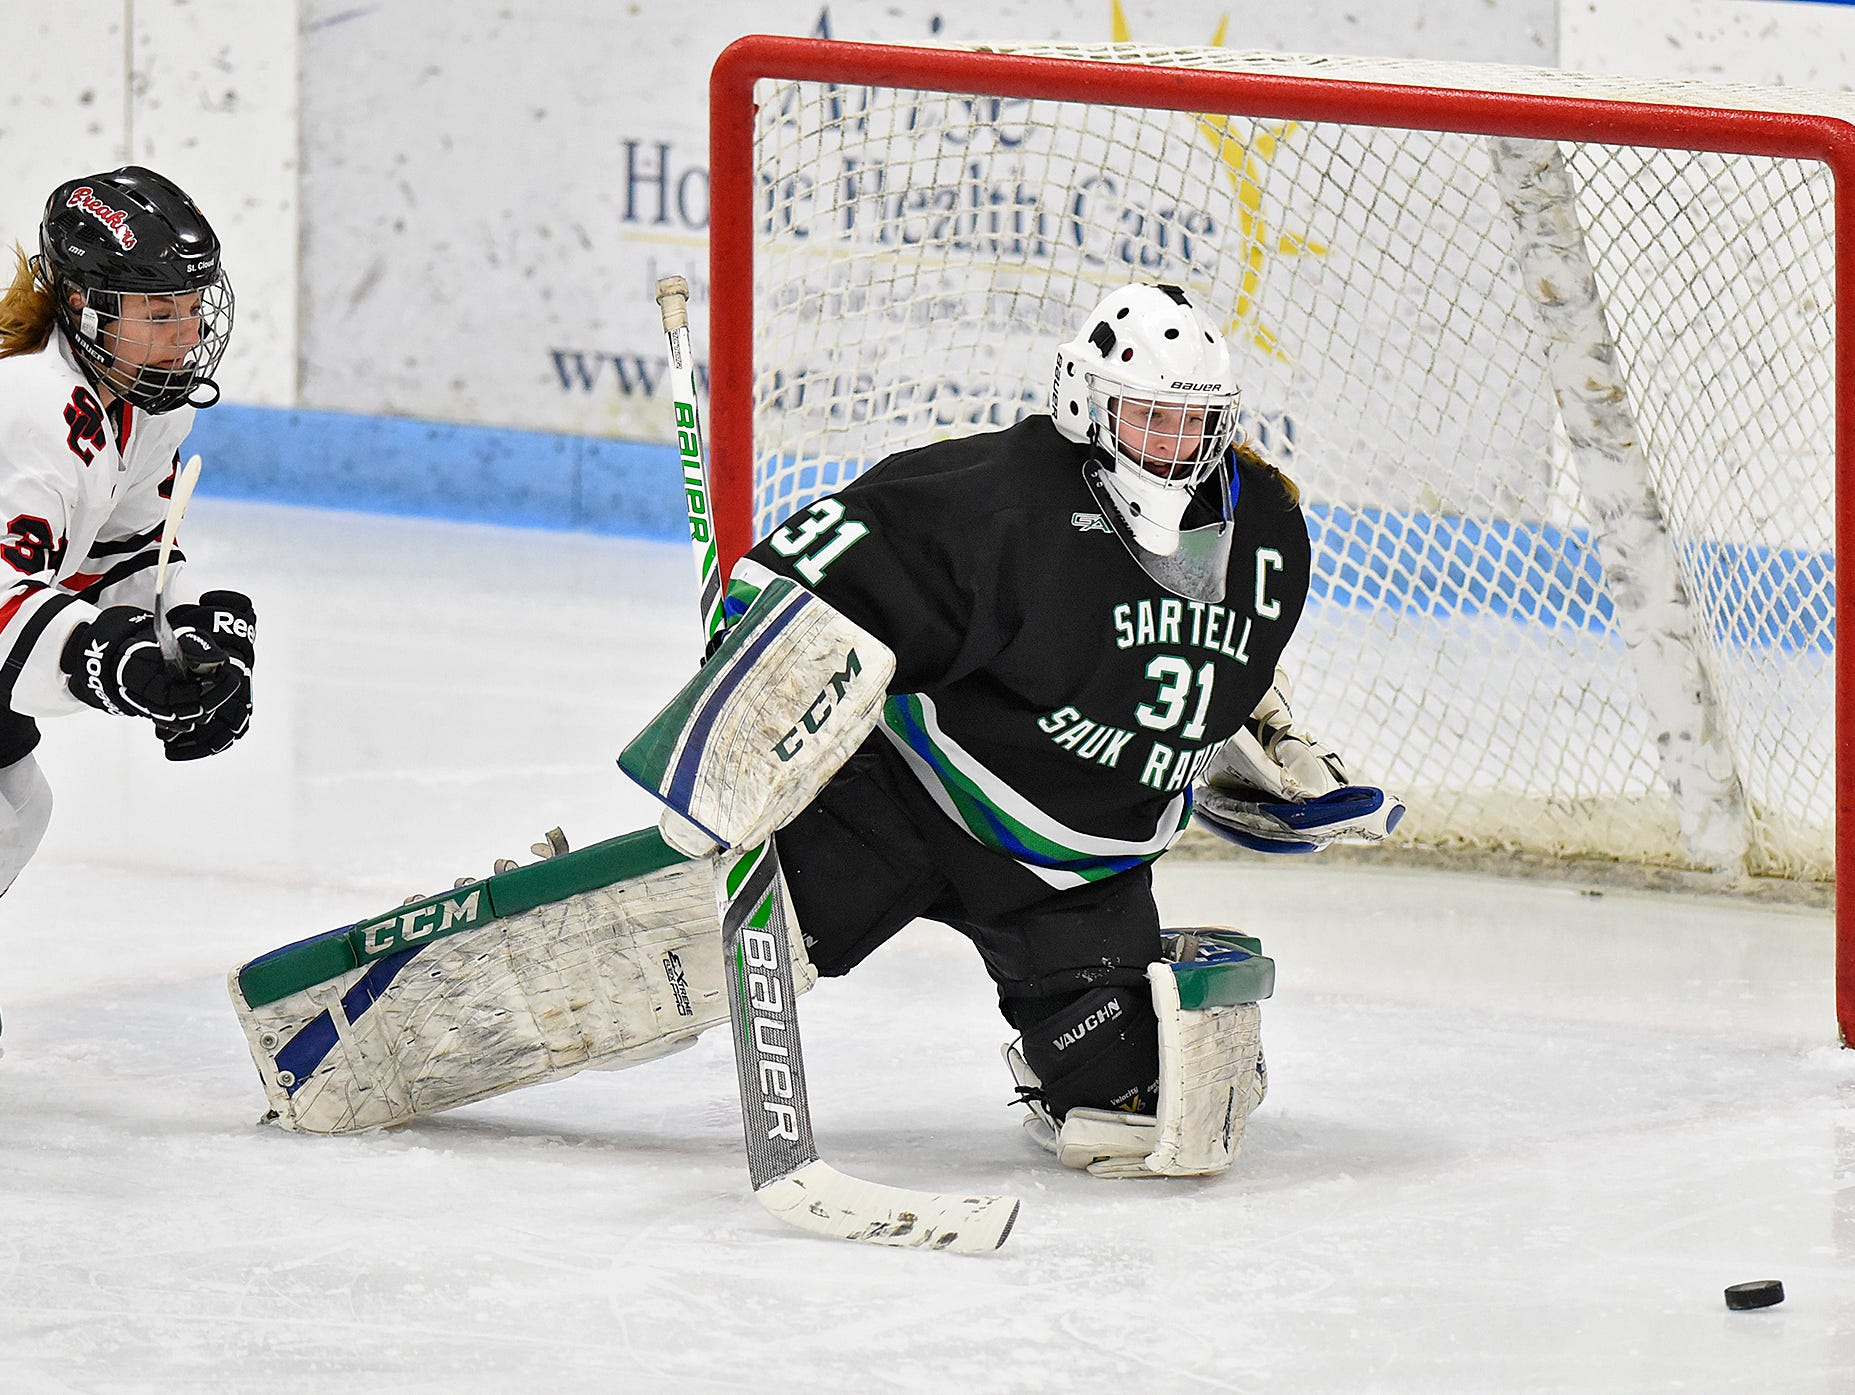 The puck skips past Sartell/Sauk Rapids goaltender Clare Minnerath and Megan Millroy of the Icebreakers during the first period of Thursday's game at the MAC in St. Cloud.